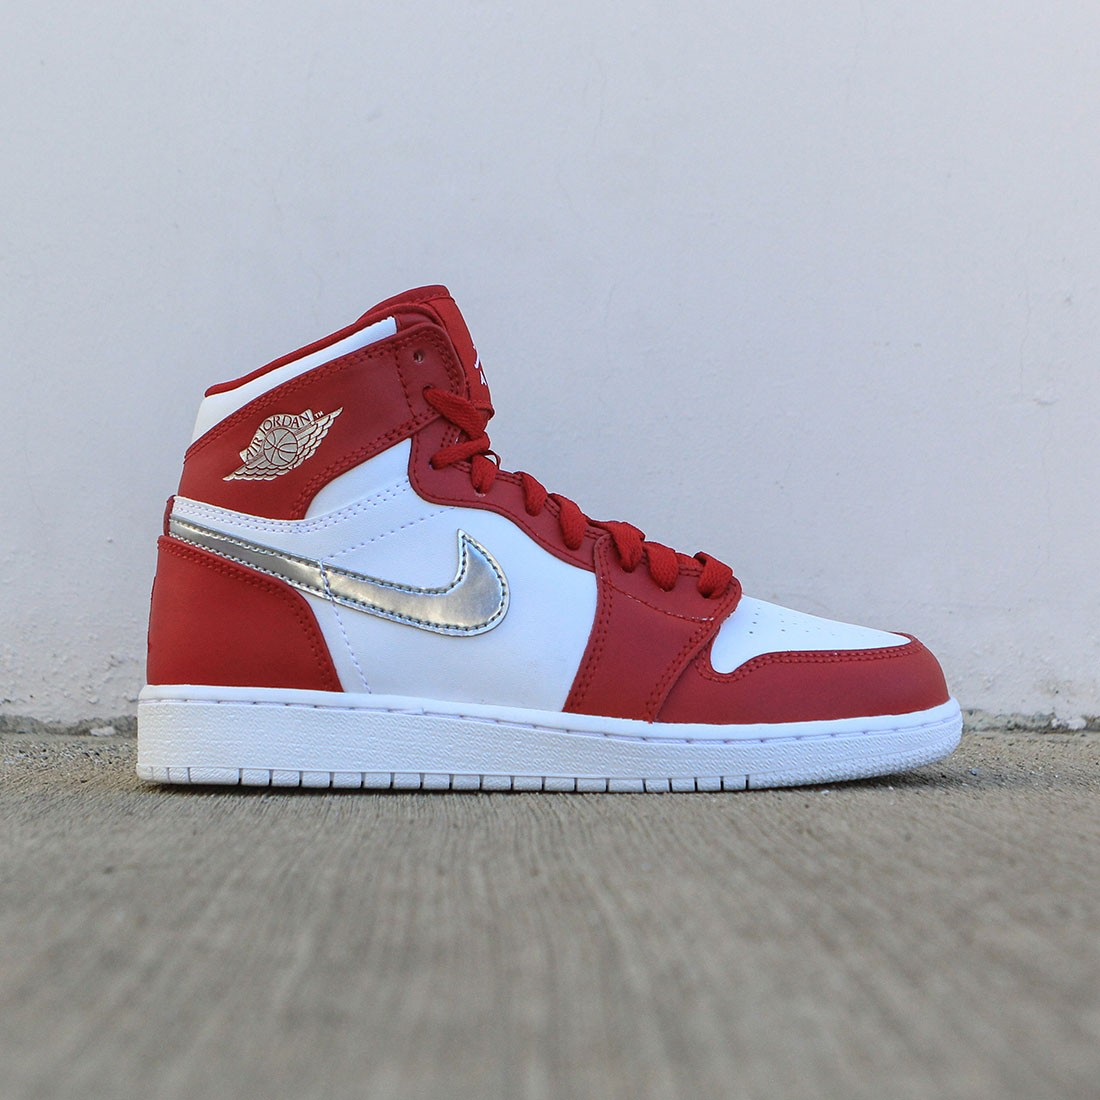 uk availability 95e46 c9cf2 Jordan Big Kids Air Jordan 1 Retro High (GS) (gym red   metallic silver- white)